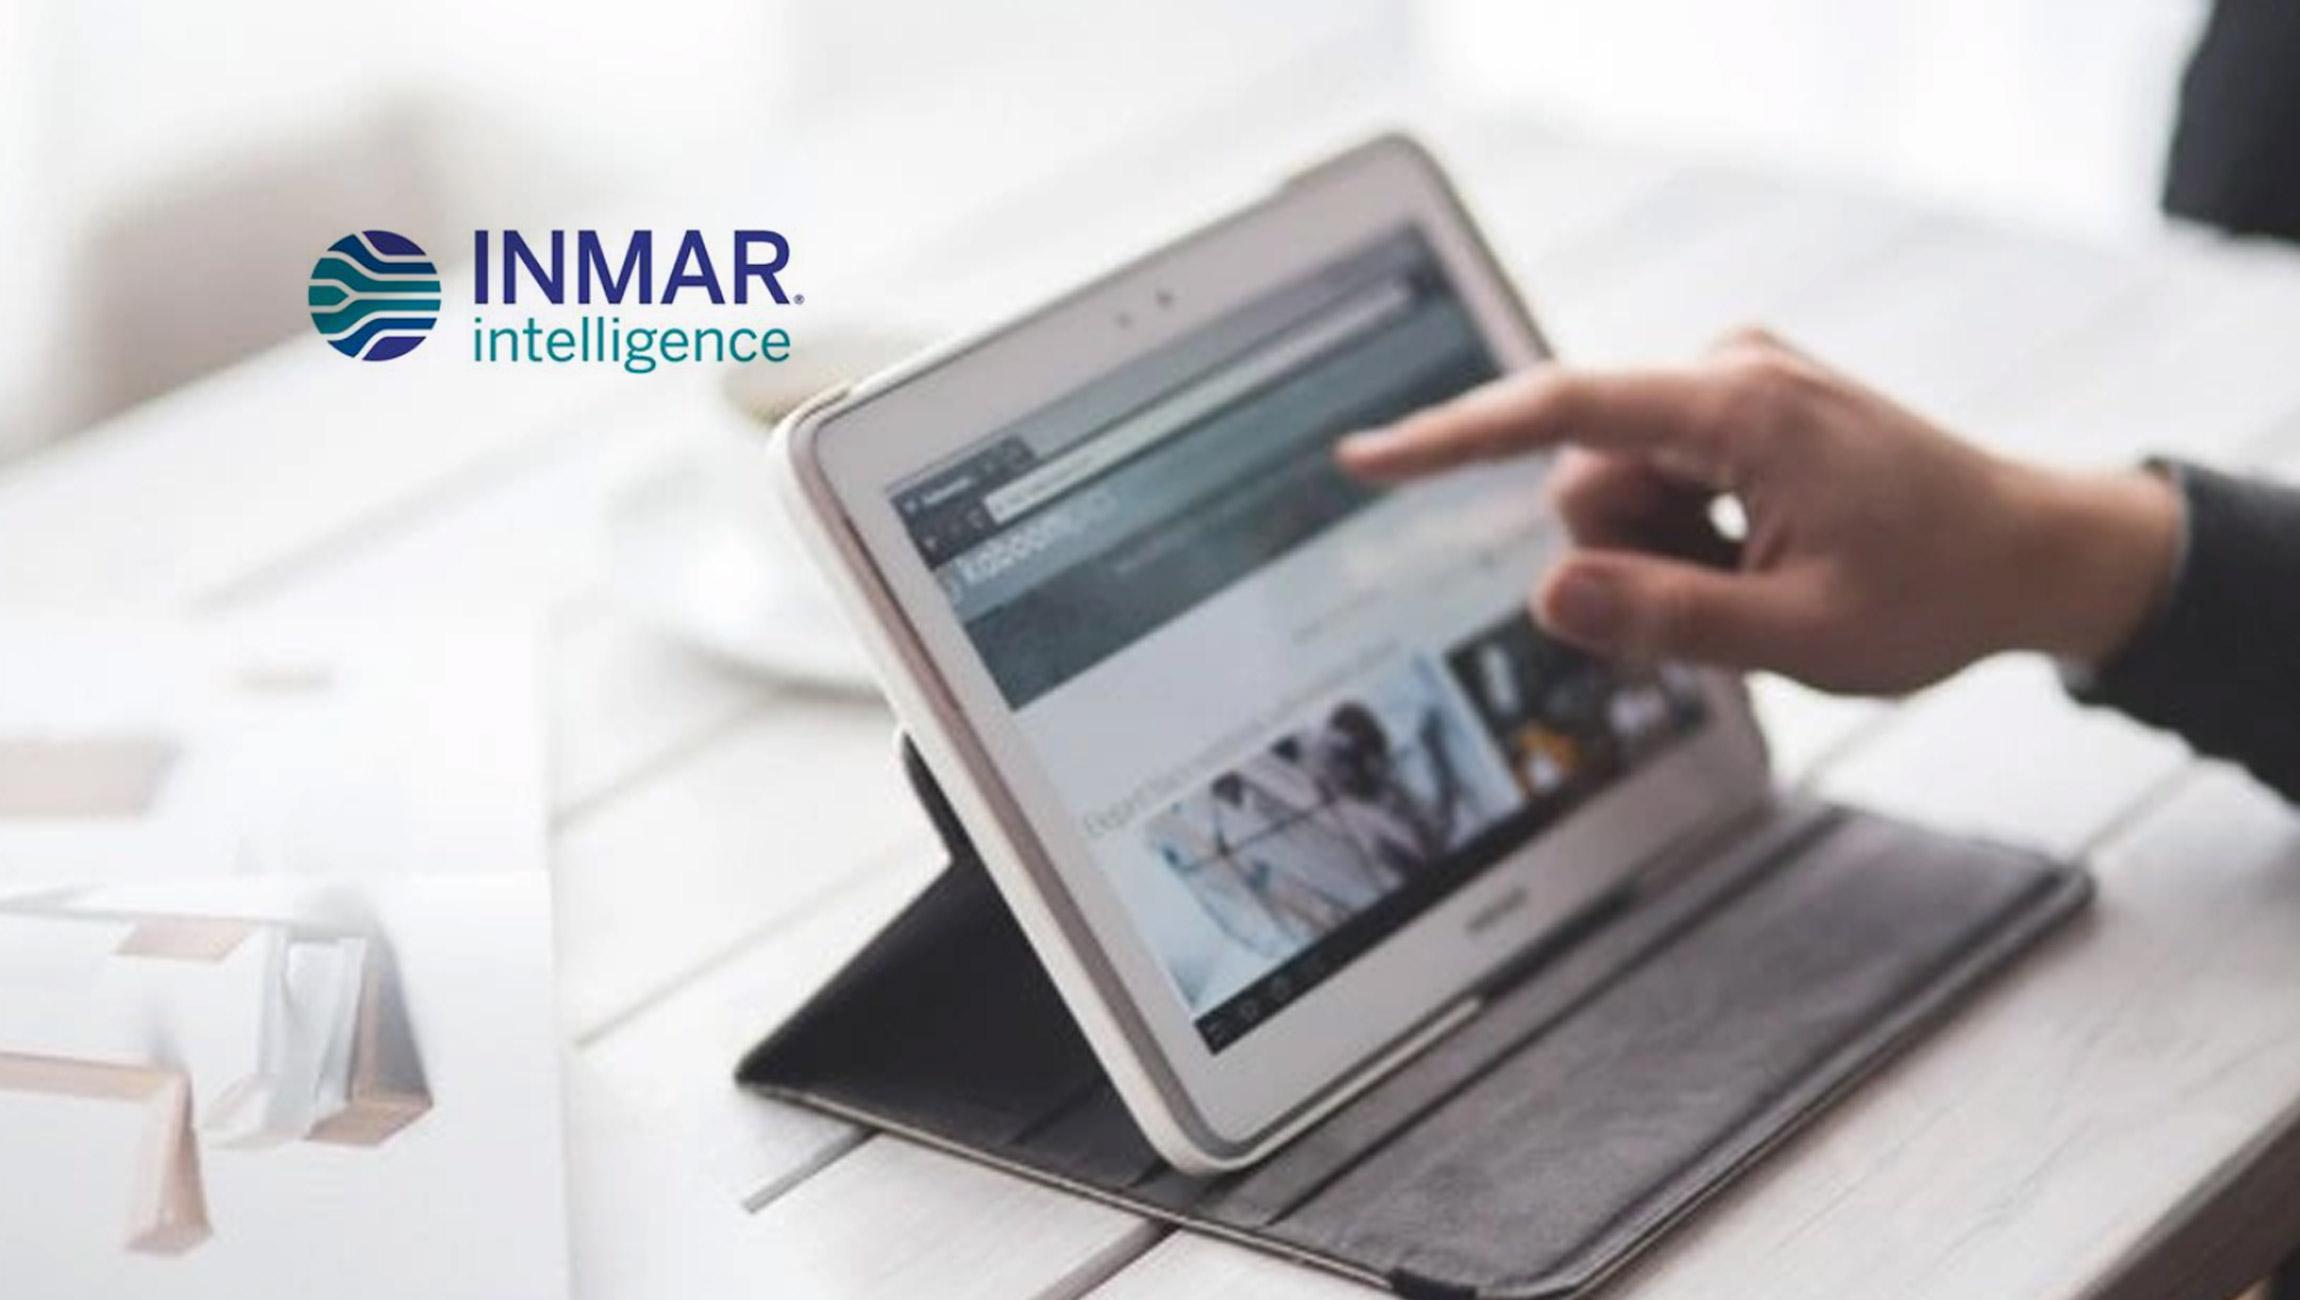 Inmar Intelligence Named Top 10 Marketing Attribution Provider In 2020 By MarTech Outlook Magazine